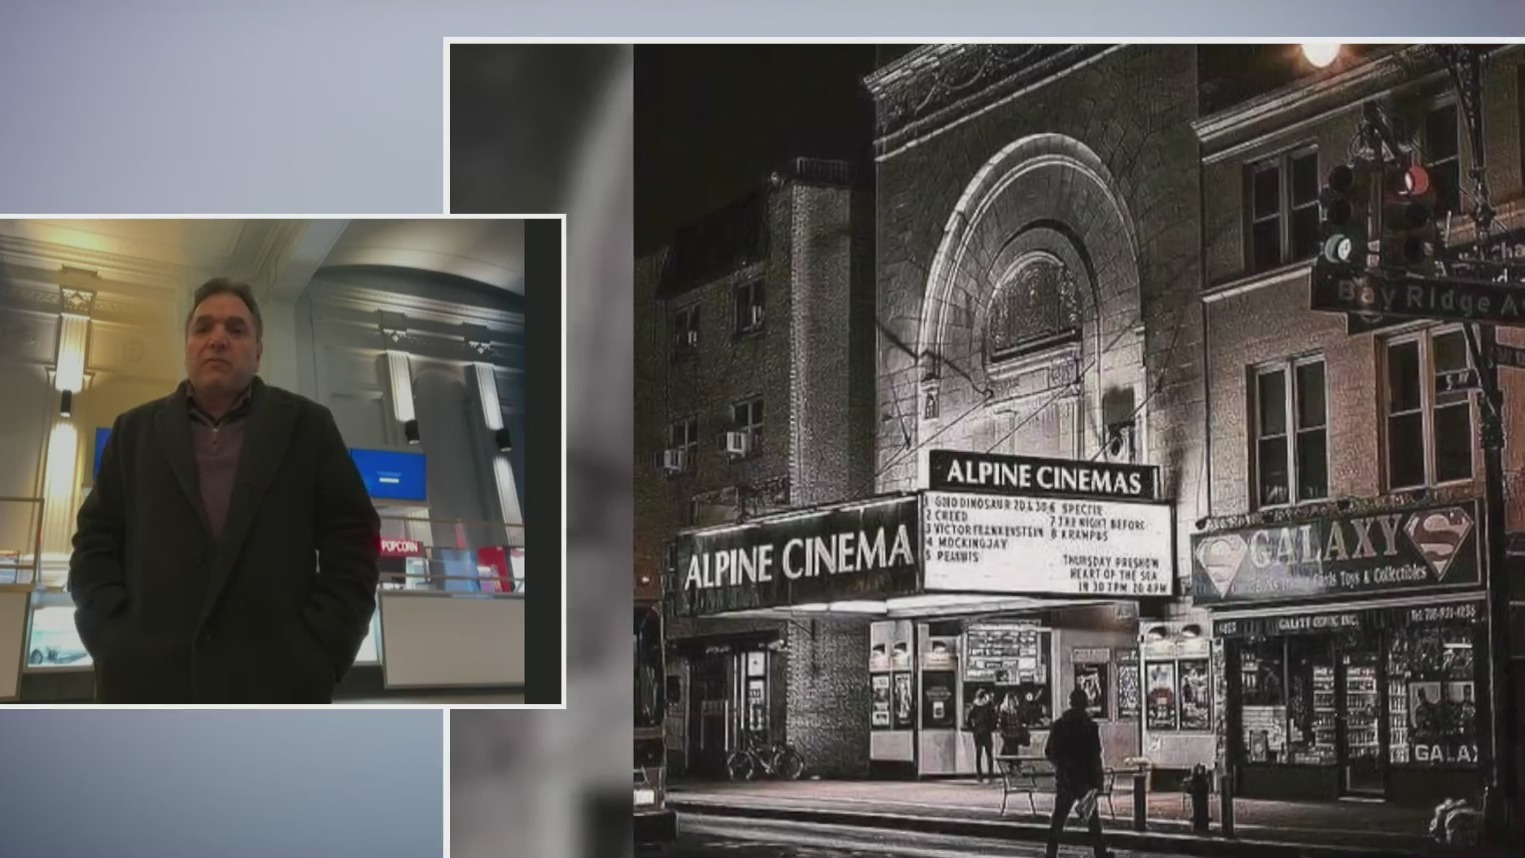 NYC movie theater owner Nick Nicolaou